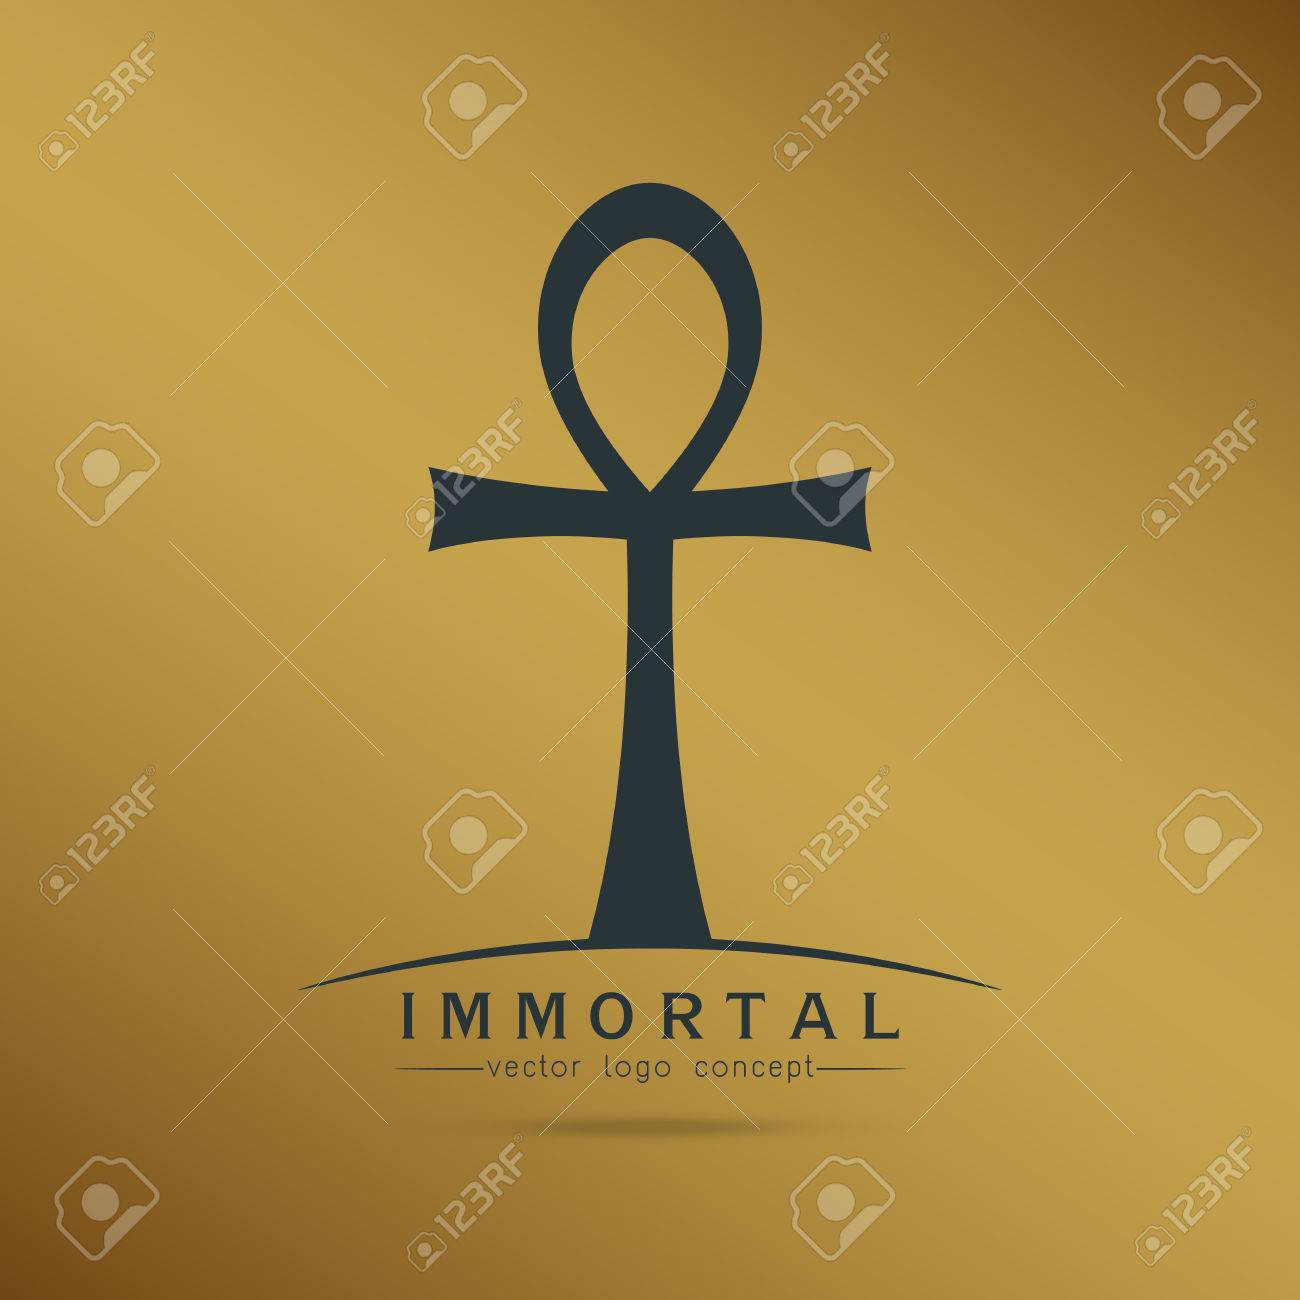 Symbol of immortal ankh egyptian cross of pharaohs vector symbol of immortal ankh egyptian cross of pharaohs vector illustration stock vector 56663343 buycottarizona Choice Image